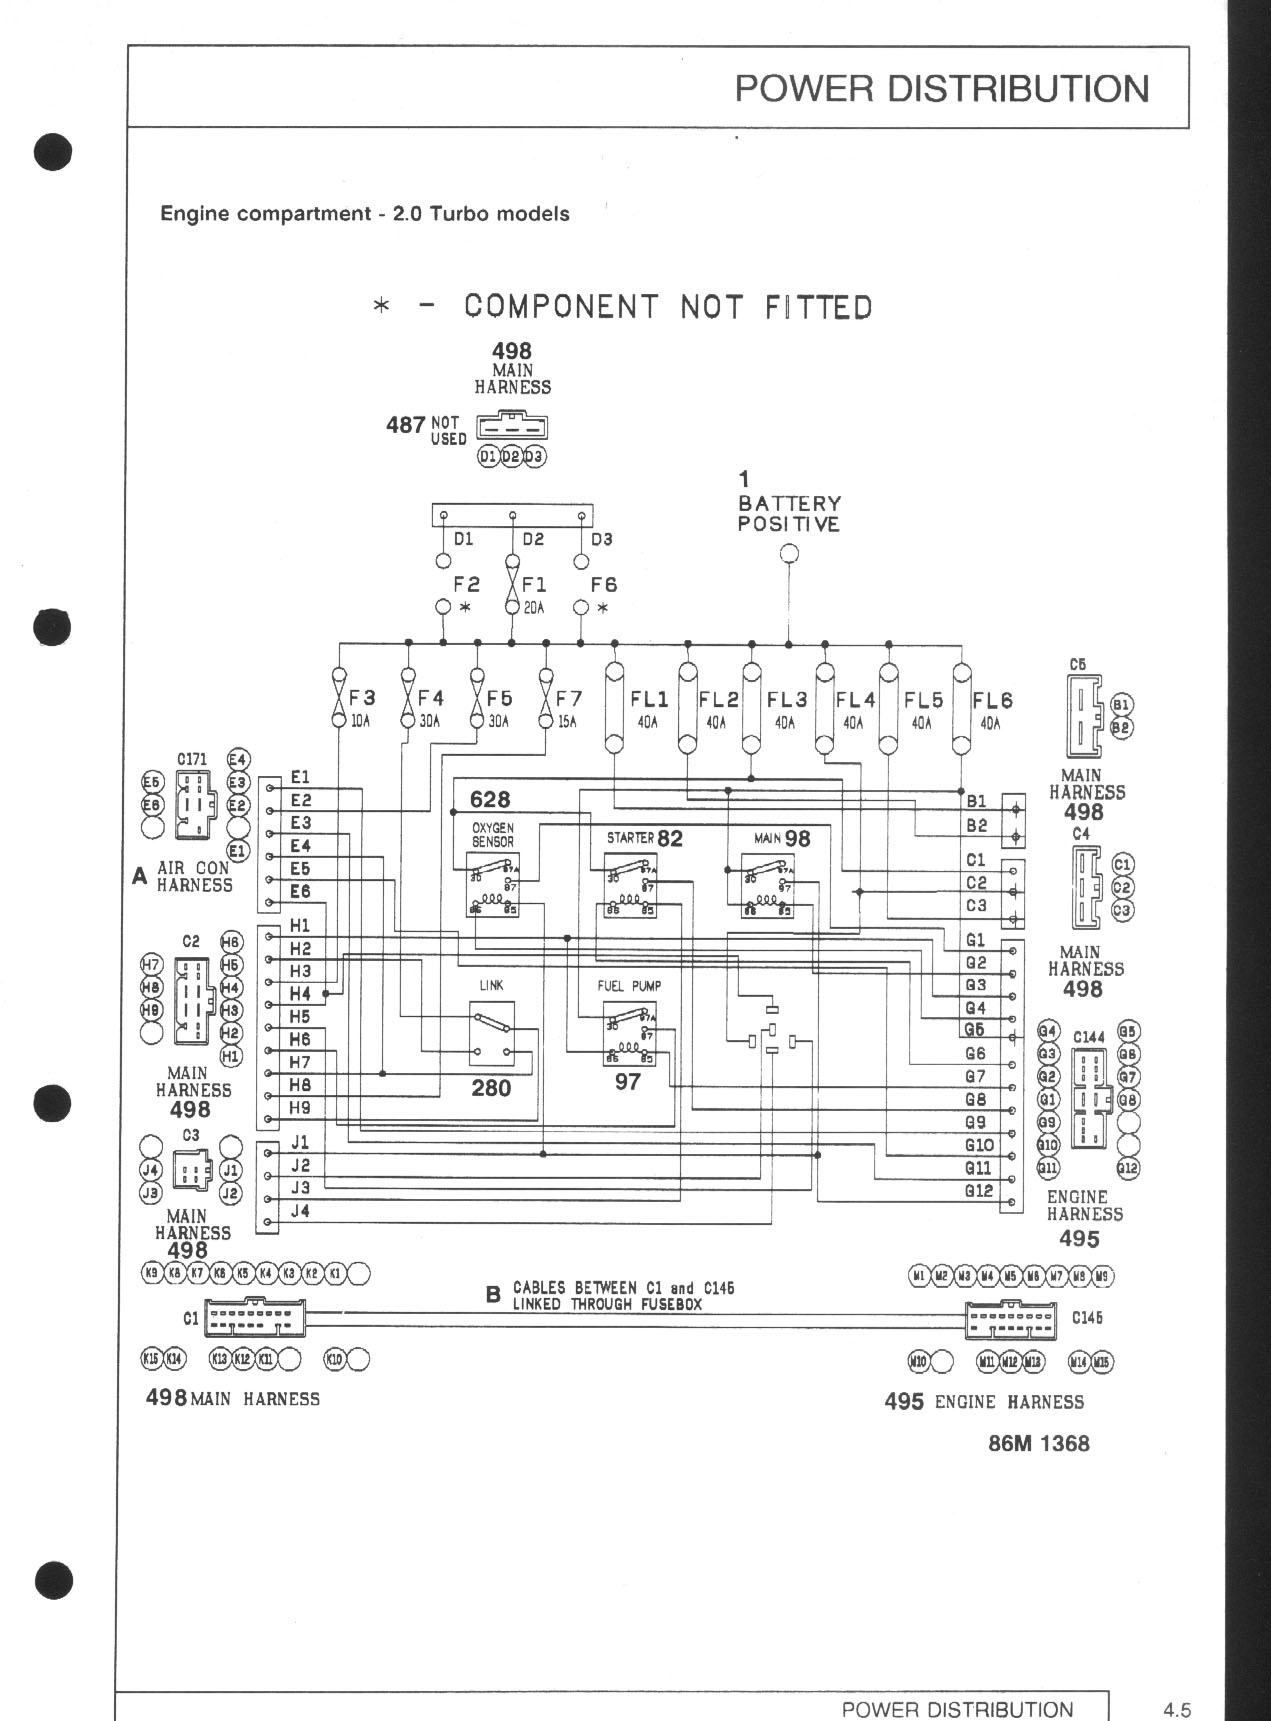 rover 420 wiring diagram wiring diagram today rover 420 wiring diagram [ 1271 x 1721 Pixel ]